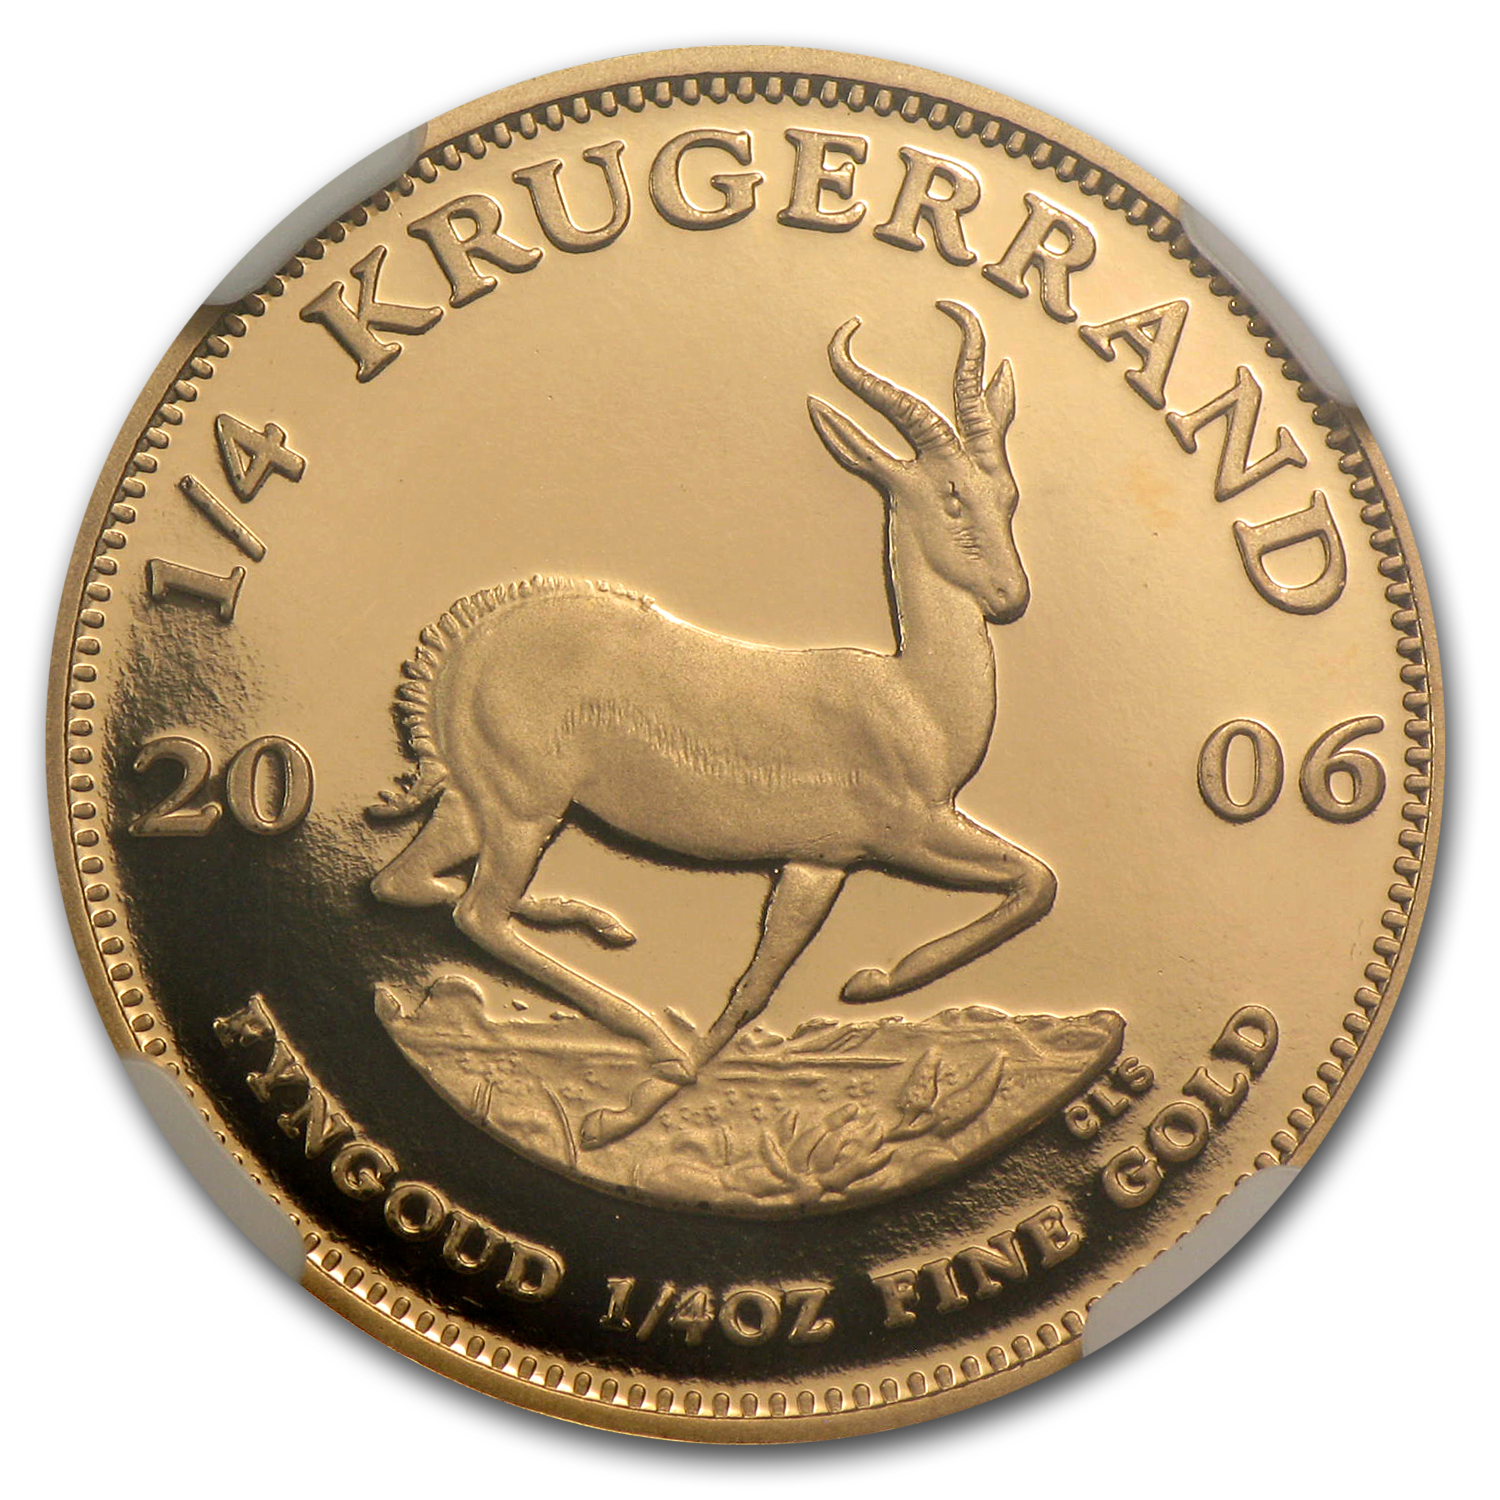 2006 South Africa 1/4 oz Gold Krugerrand PF-70 NGC